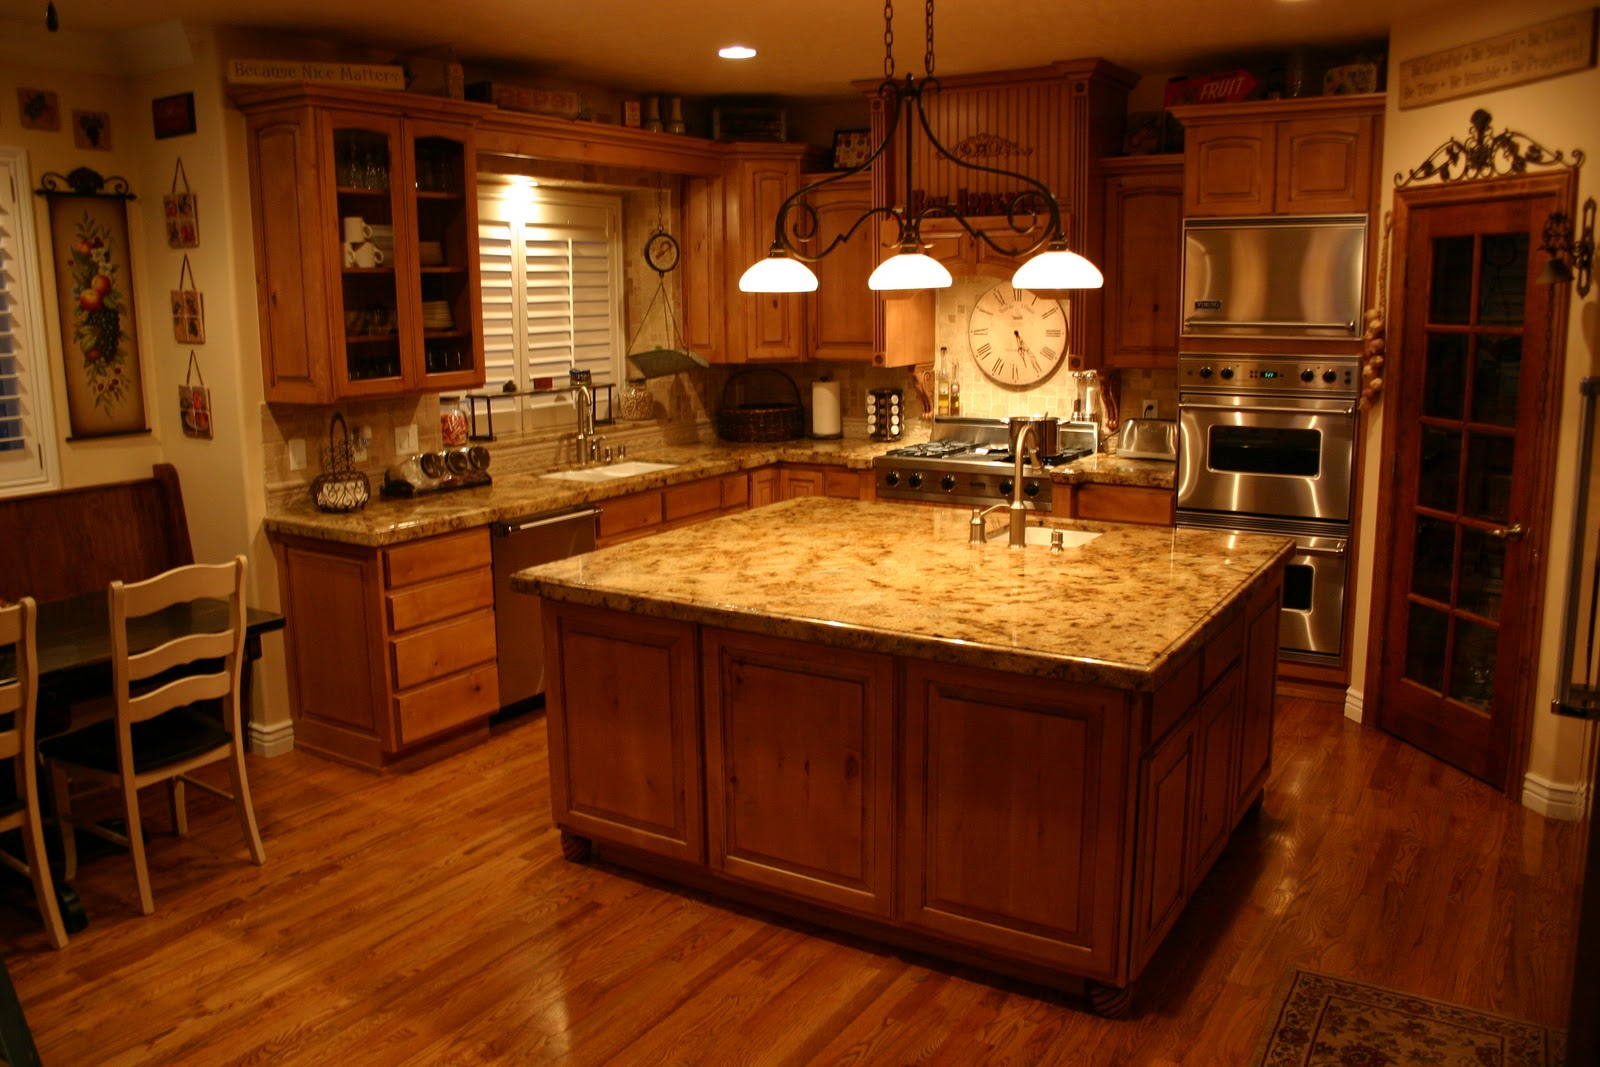 The granite gurus lapidus granite kitchen - Kitchen countertops design ...